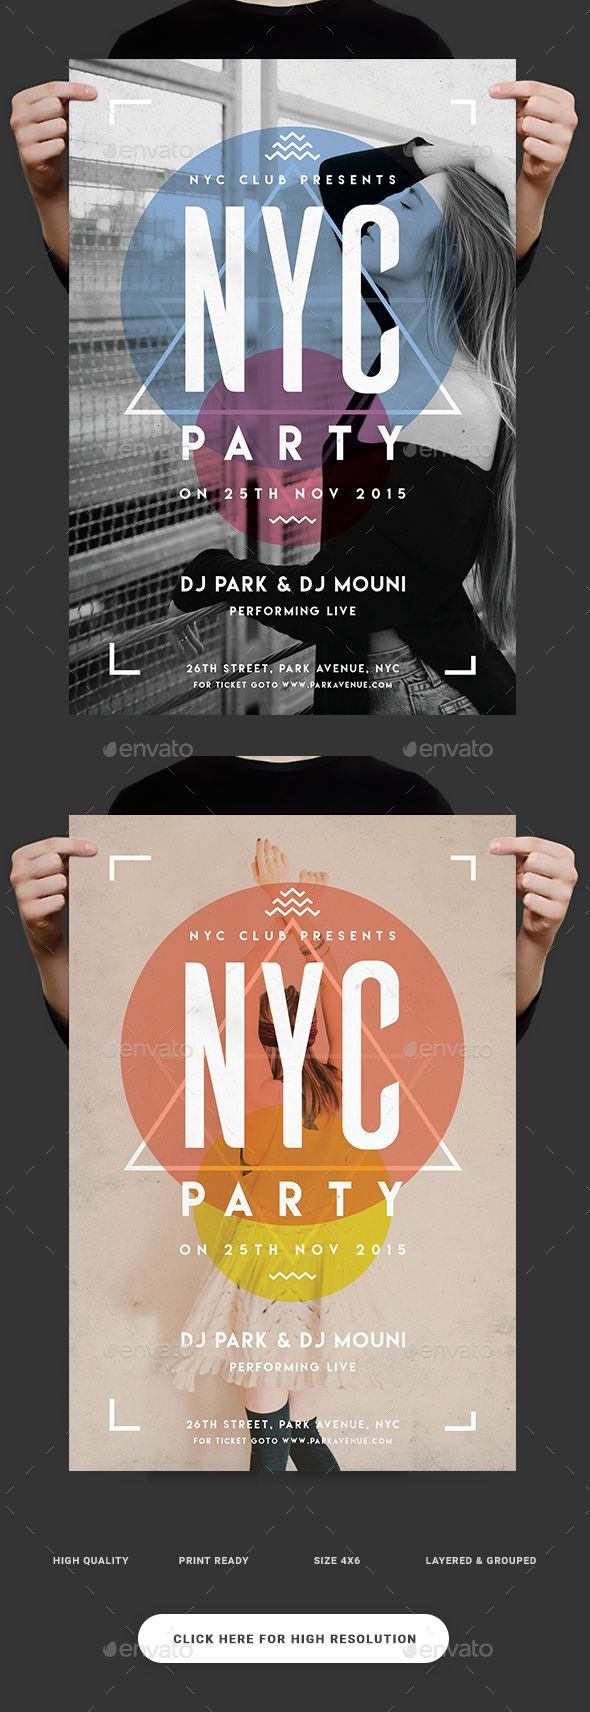 NYC Party Flyer. Download:https://graphicriver.net/item/nyc-party-flyer/18760890?ref=thanhdesign